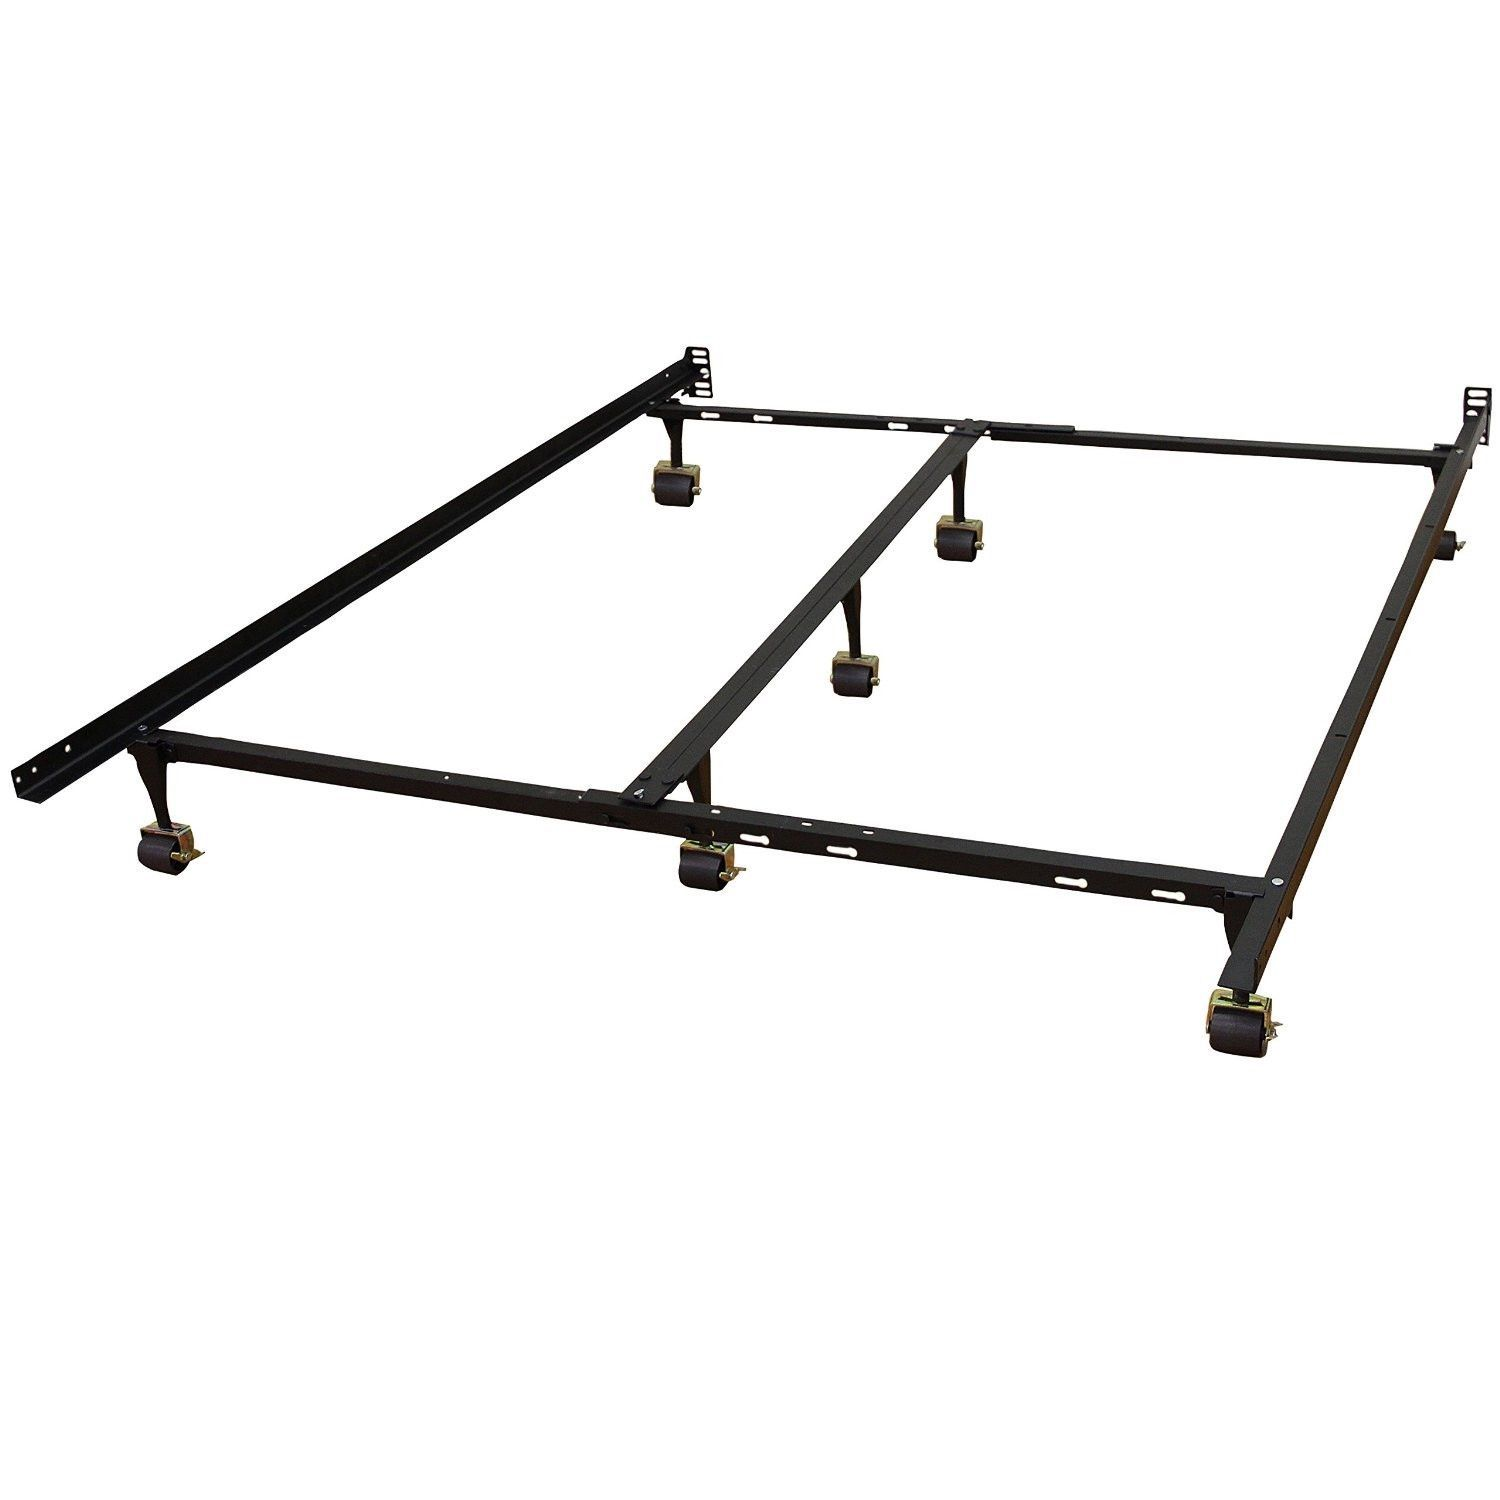 Universal Metal Bed Frame Adjusts To Fit Twin Full Queen King Cal